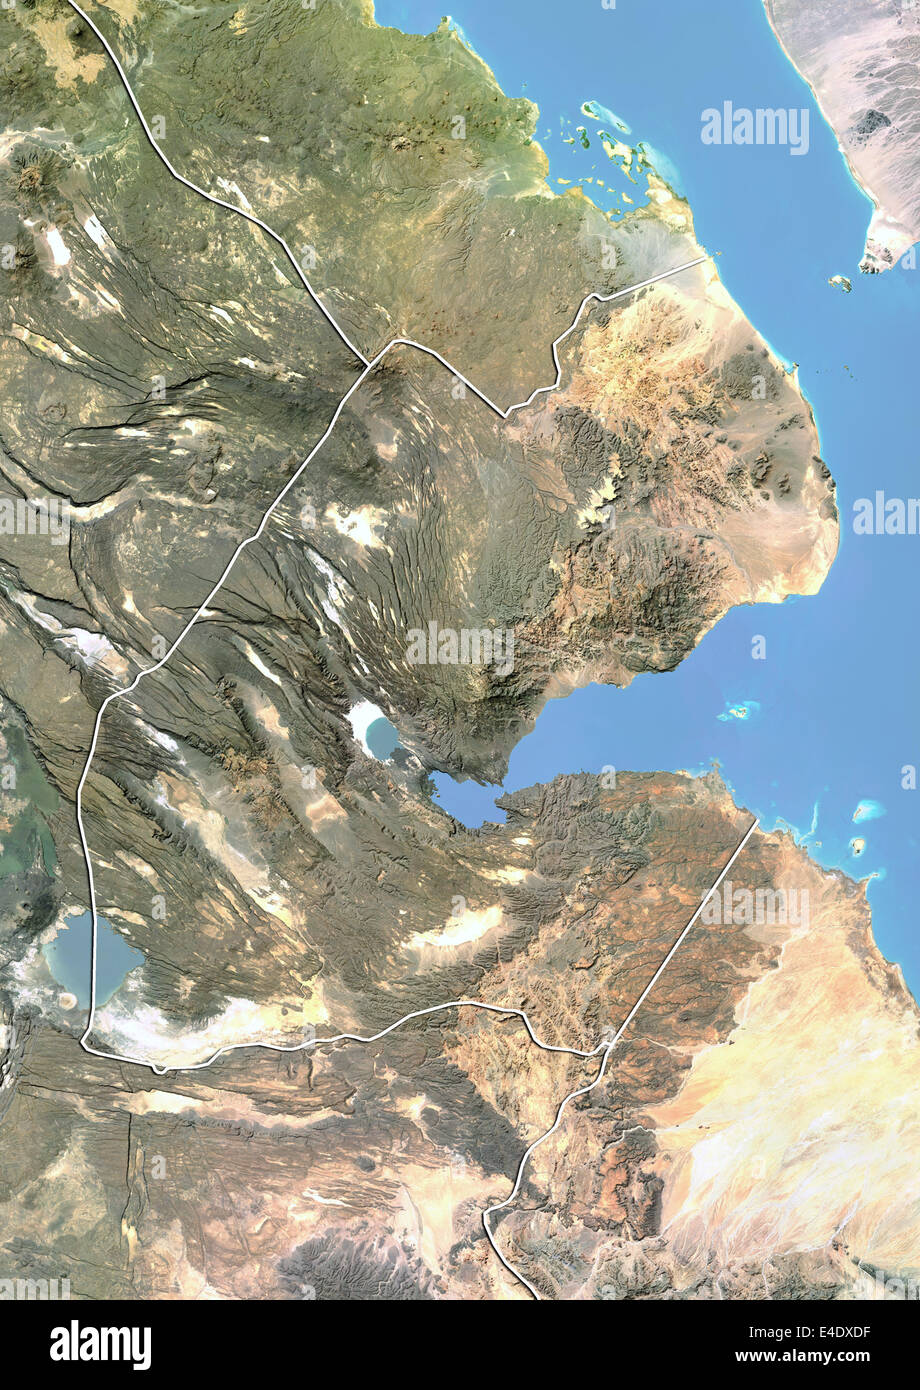 Djibouti, Satellite Image With Bump Effect, With Border ... on topo map of djibouti, political map of djibouti, sports of djibouti, detailed map of djibouti, terrain map of djibouti, outline map of djibouti, blank map of djibouti, world map of djibouti, street map of djibouti, physical map of djibouti, topographical map of djibouti,